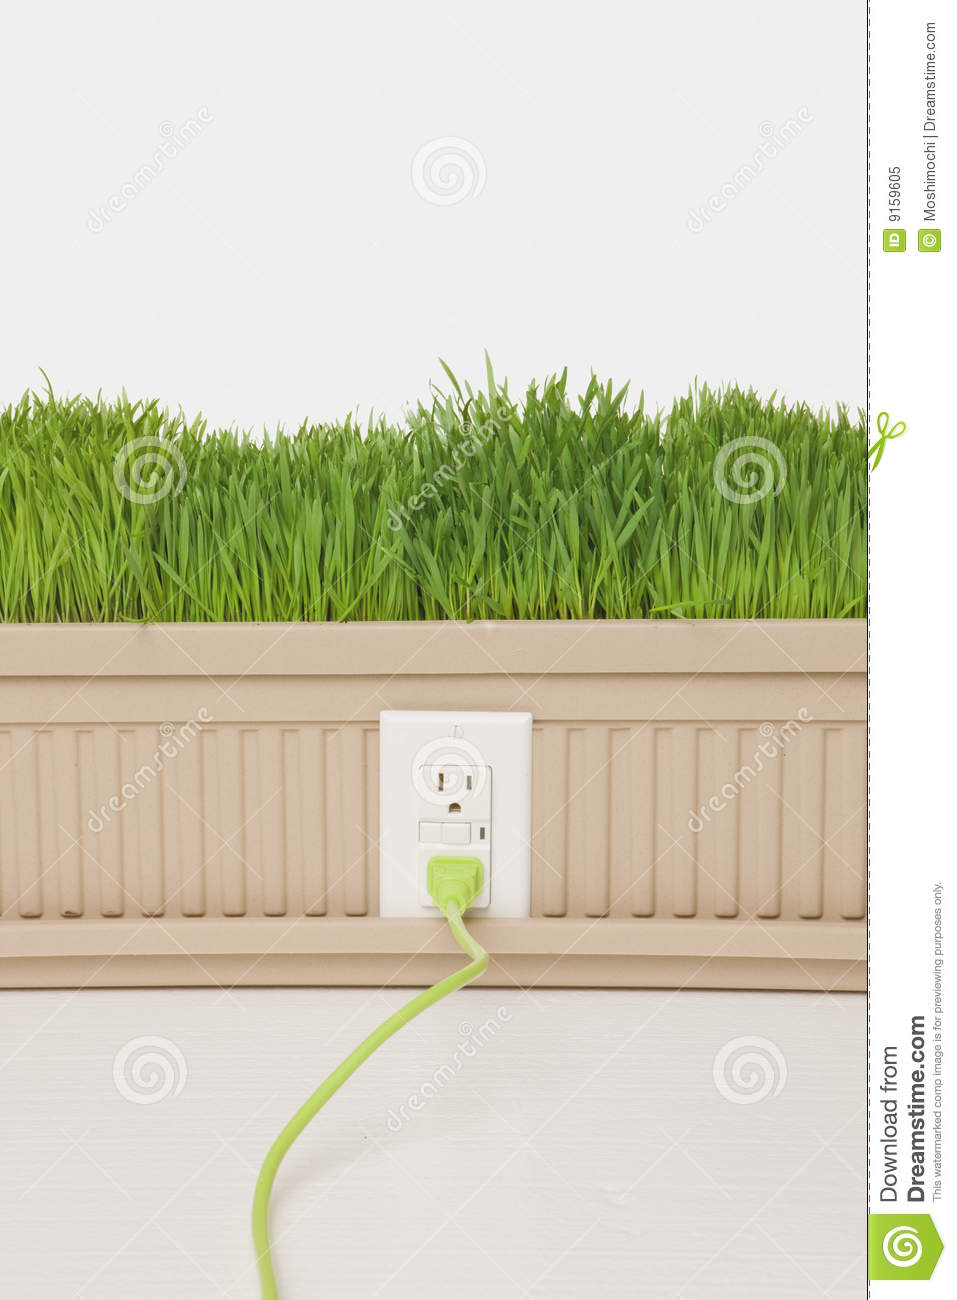 Green Planter Stock Image Image Of Cord Environmental 9159605